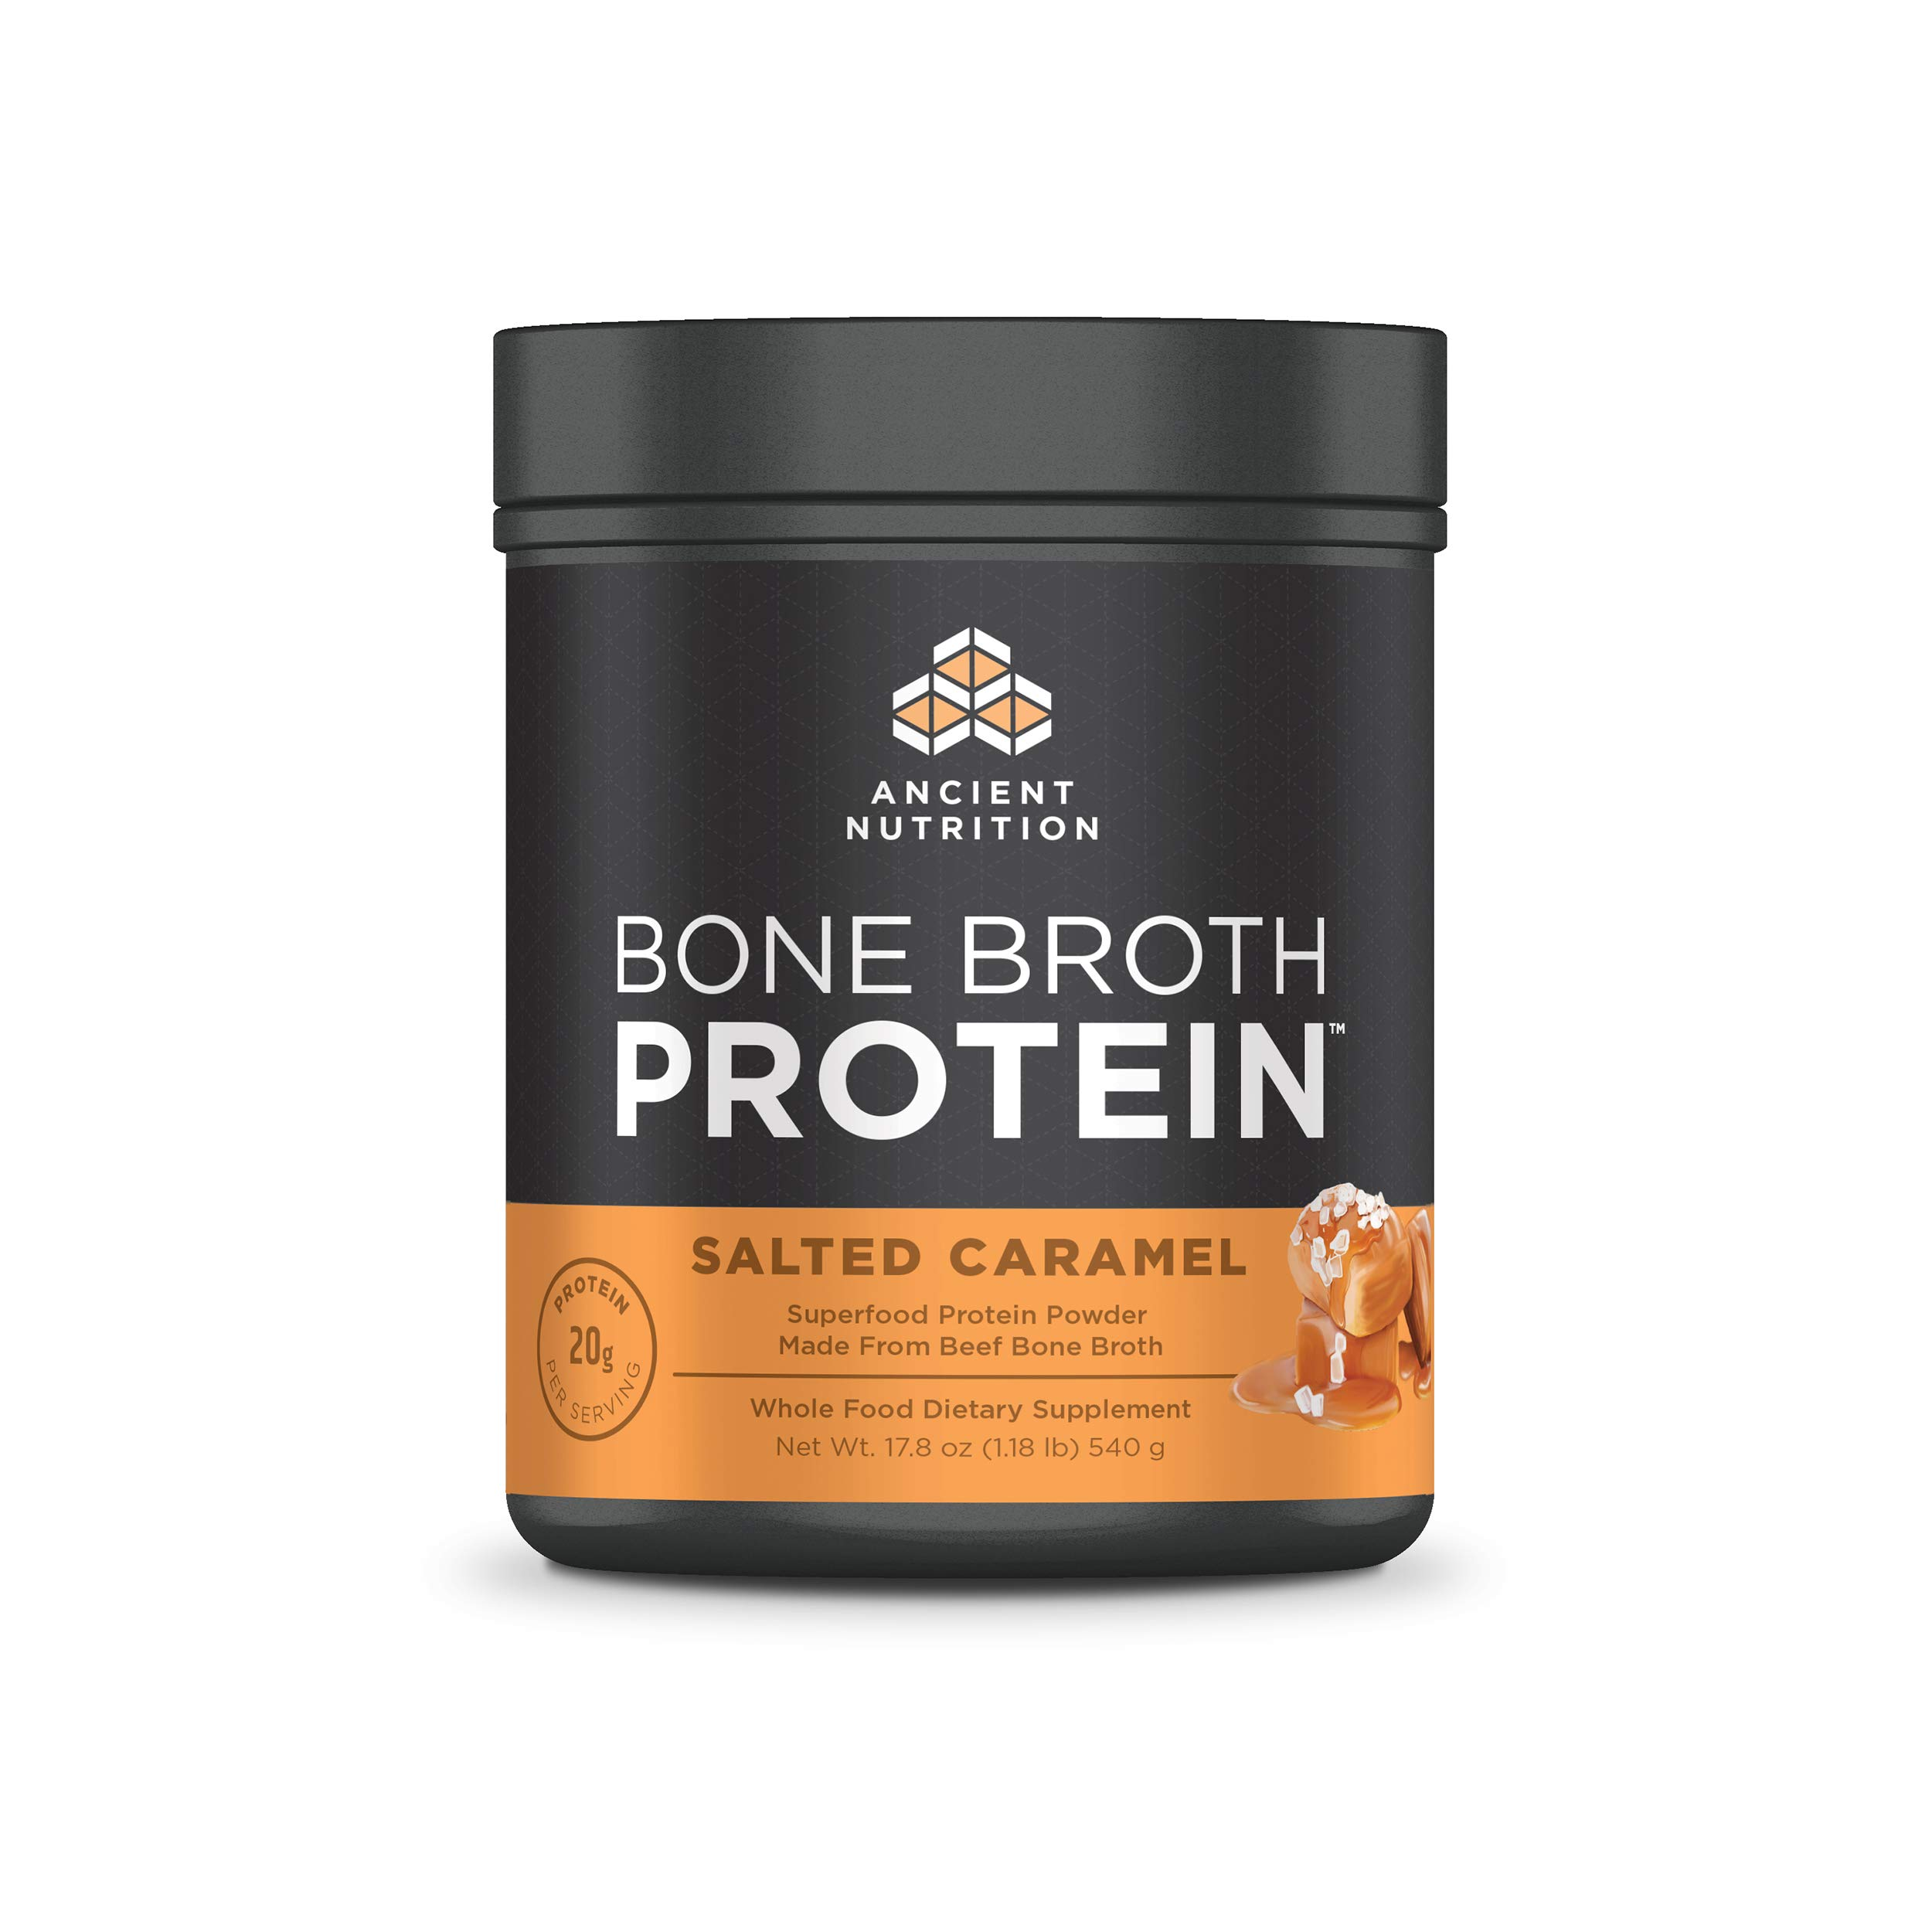 Ancient Nutrition Bone Broth Protein Powder, Salted Caramel Flavor, 17.8oz by Ancient Nutrition